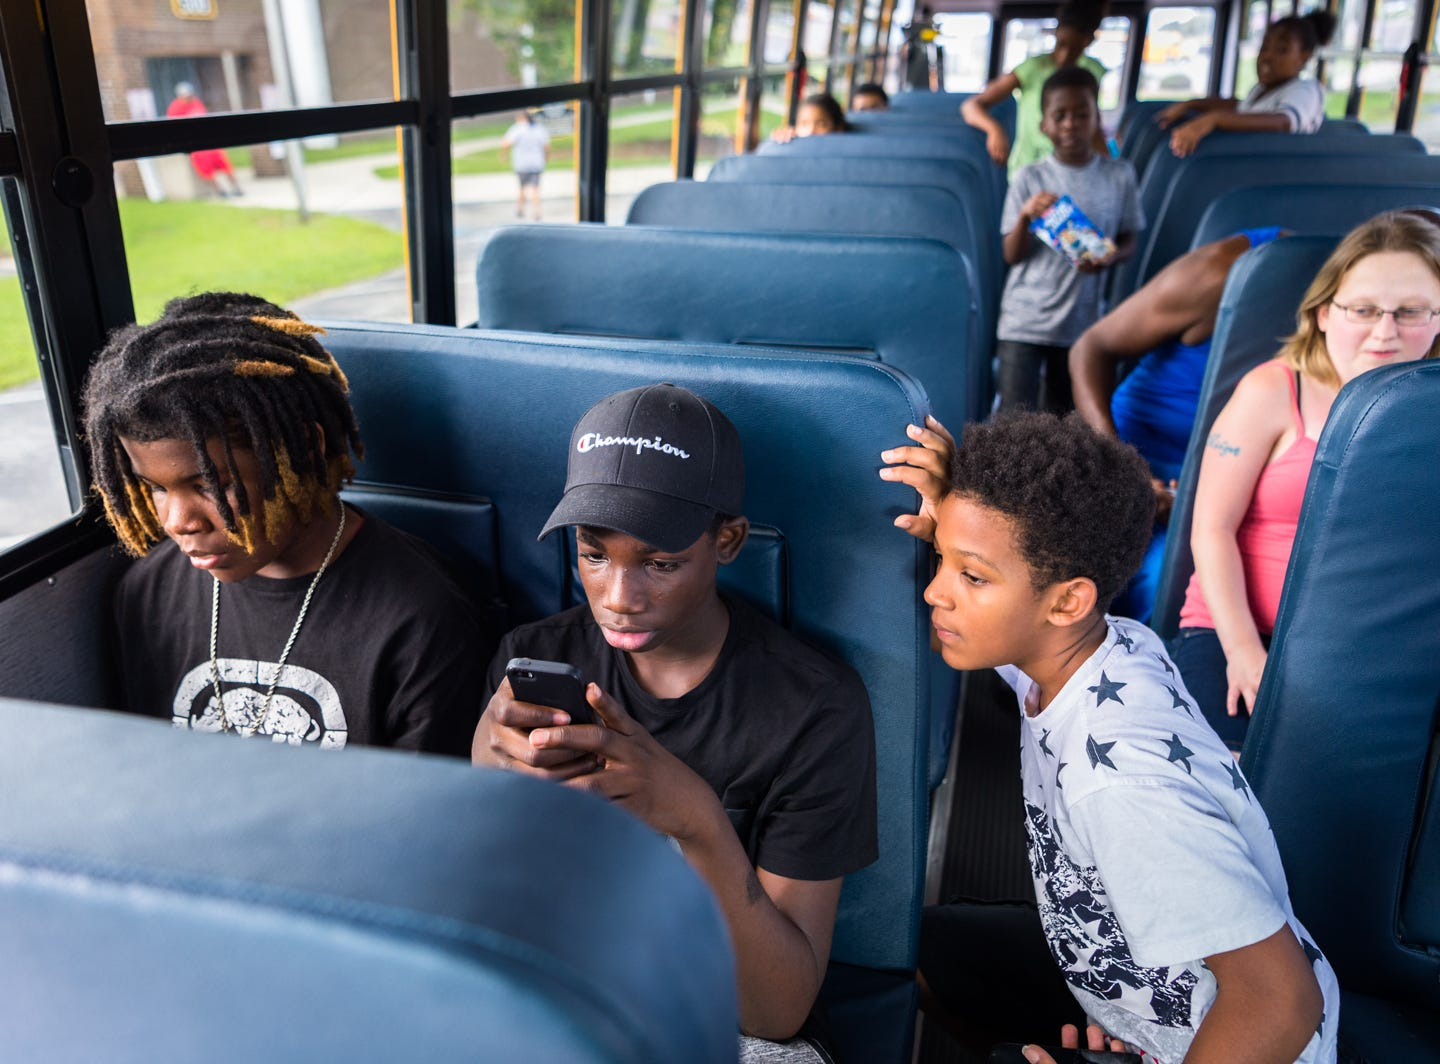 Chris Johnson, 13, Tyler Seoby, 14, and Shubert Johnson, 11, play on their phones on a bus leaving for Knightdale high school in Knightdale, a suburb of Raleigh before Hurricane Florence makes landfall Sept. 12, 2018. A storm surge of about three to six feet is expected for Swan Quarter, and around six feet for Ocracoke Island with 12-20 inches of rainfall for the entire area. Hyde county as well as several surrounding counties are under mandatory evacuation.